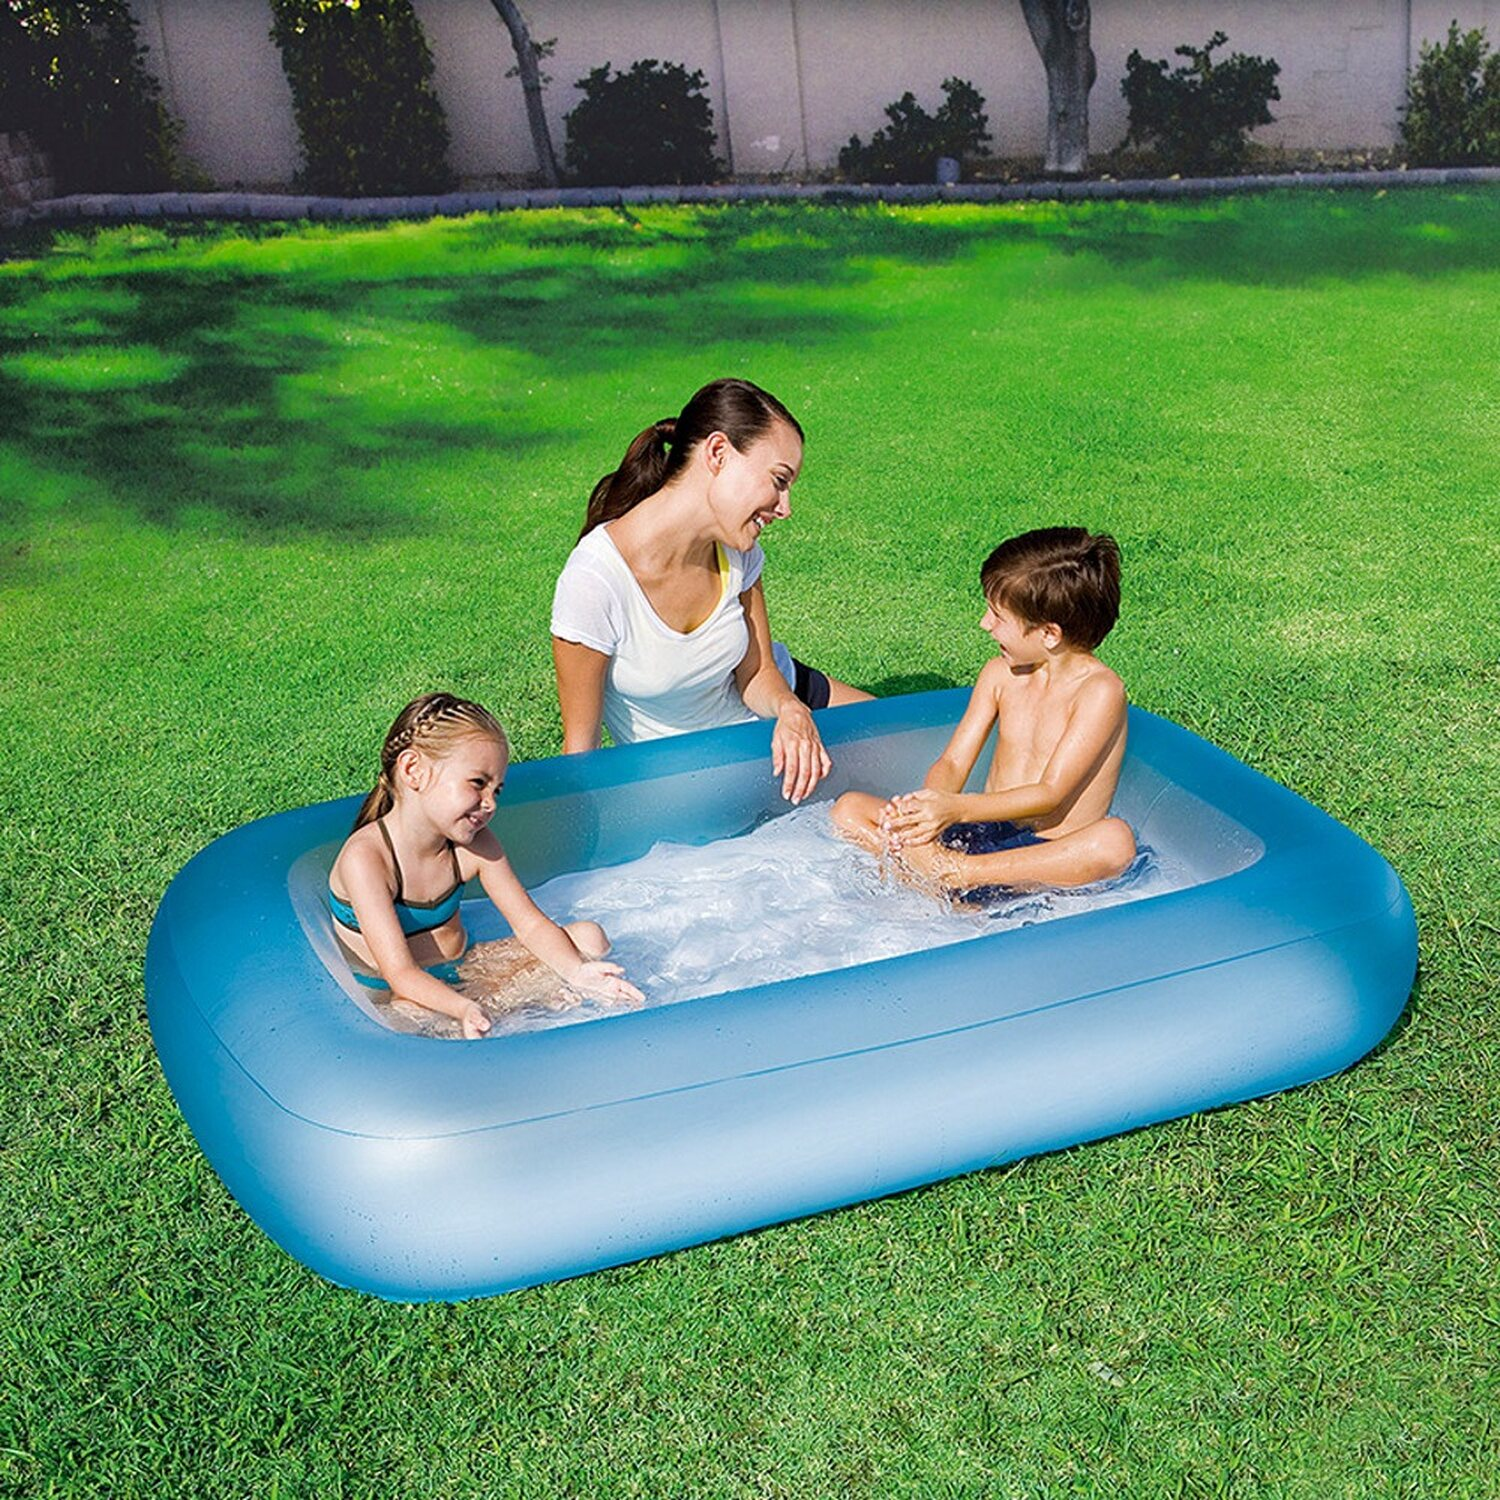 Bestway piscina aquababe 165 cm x 104 cm x 25 cm colori for Bestway italia piscine